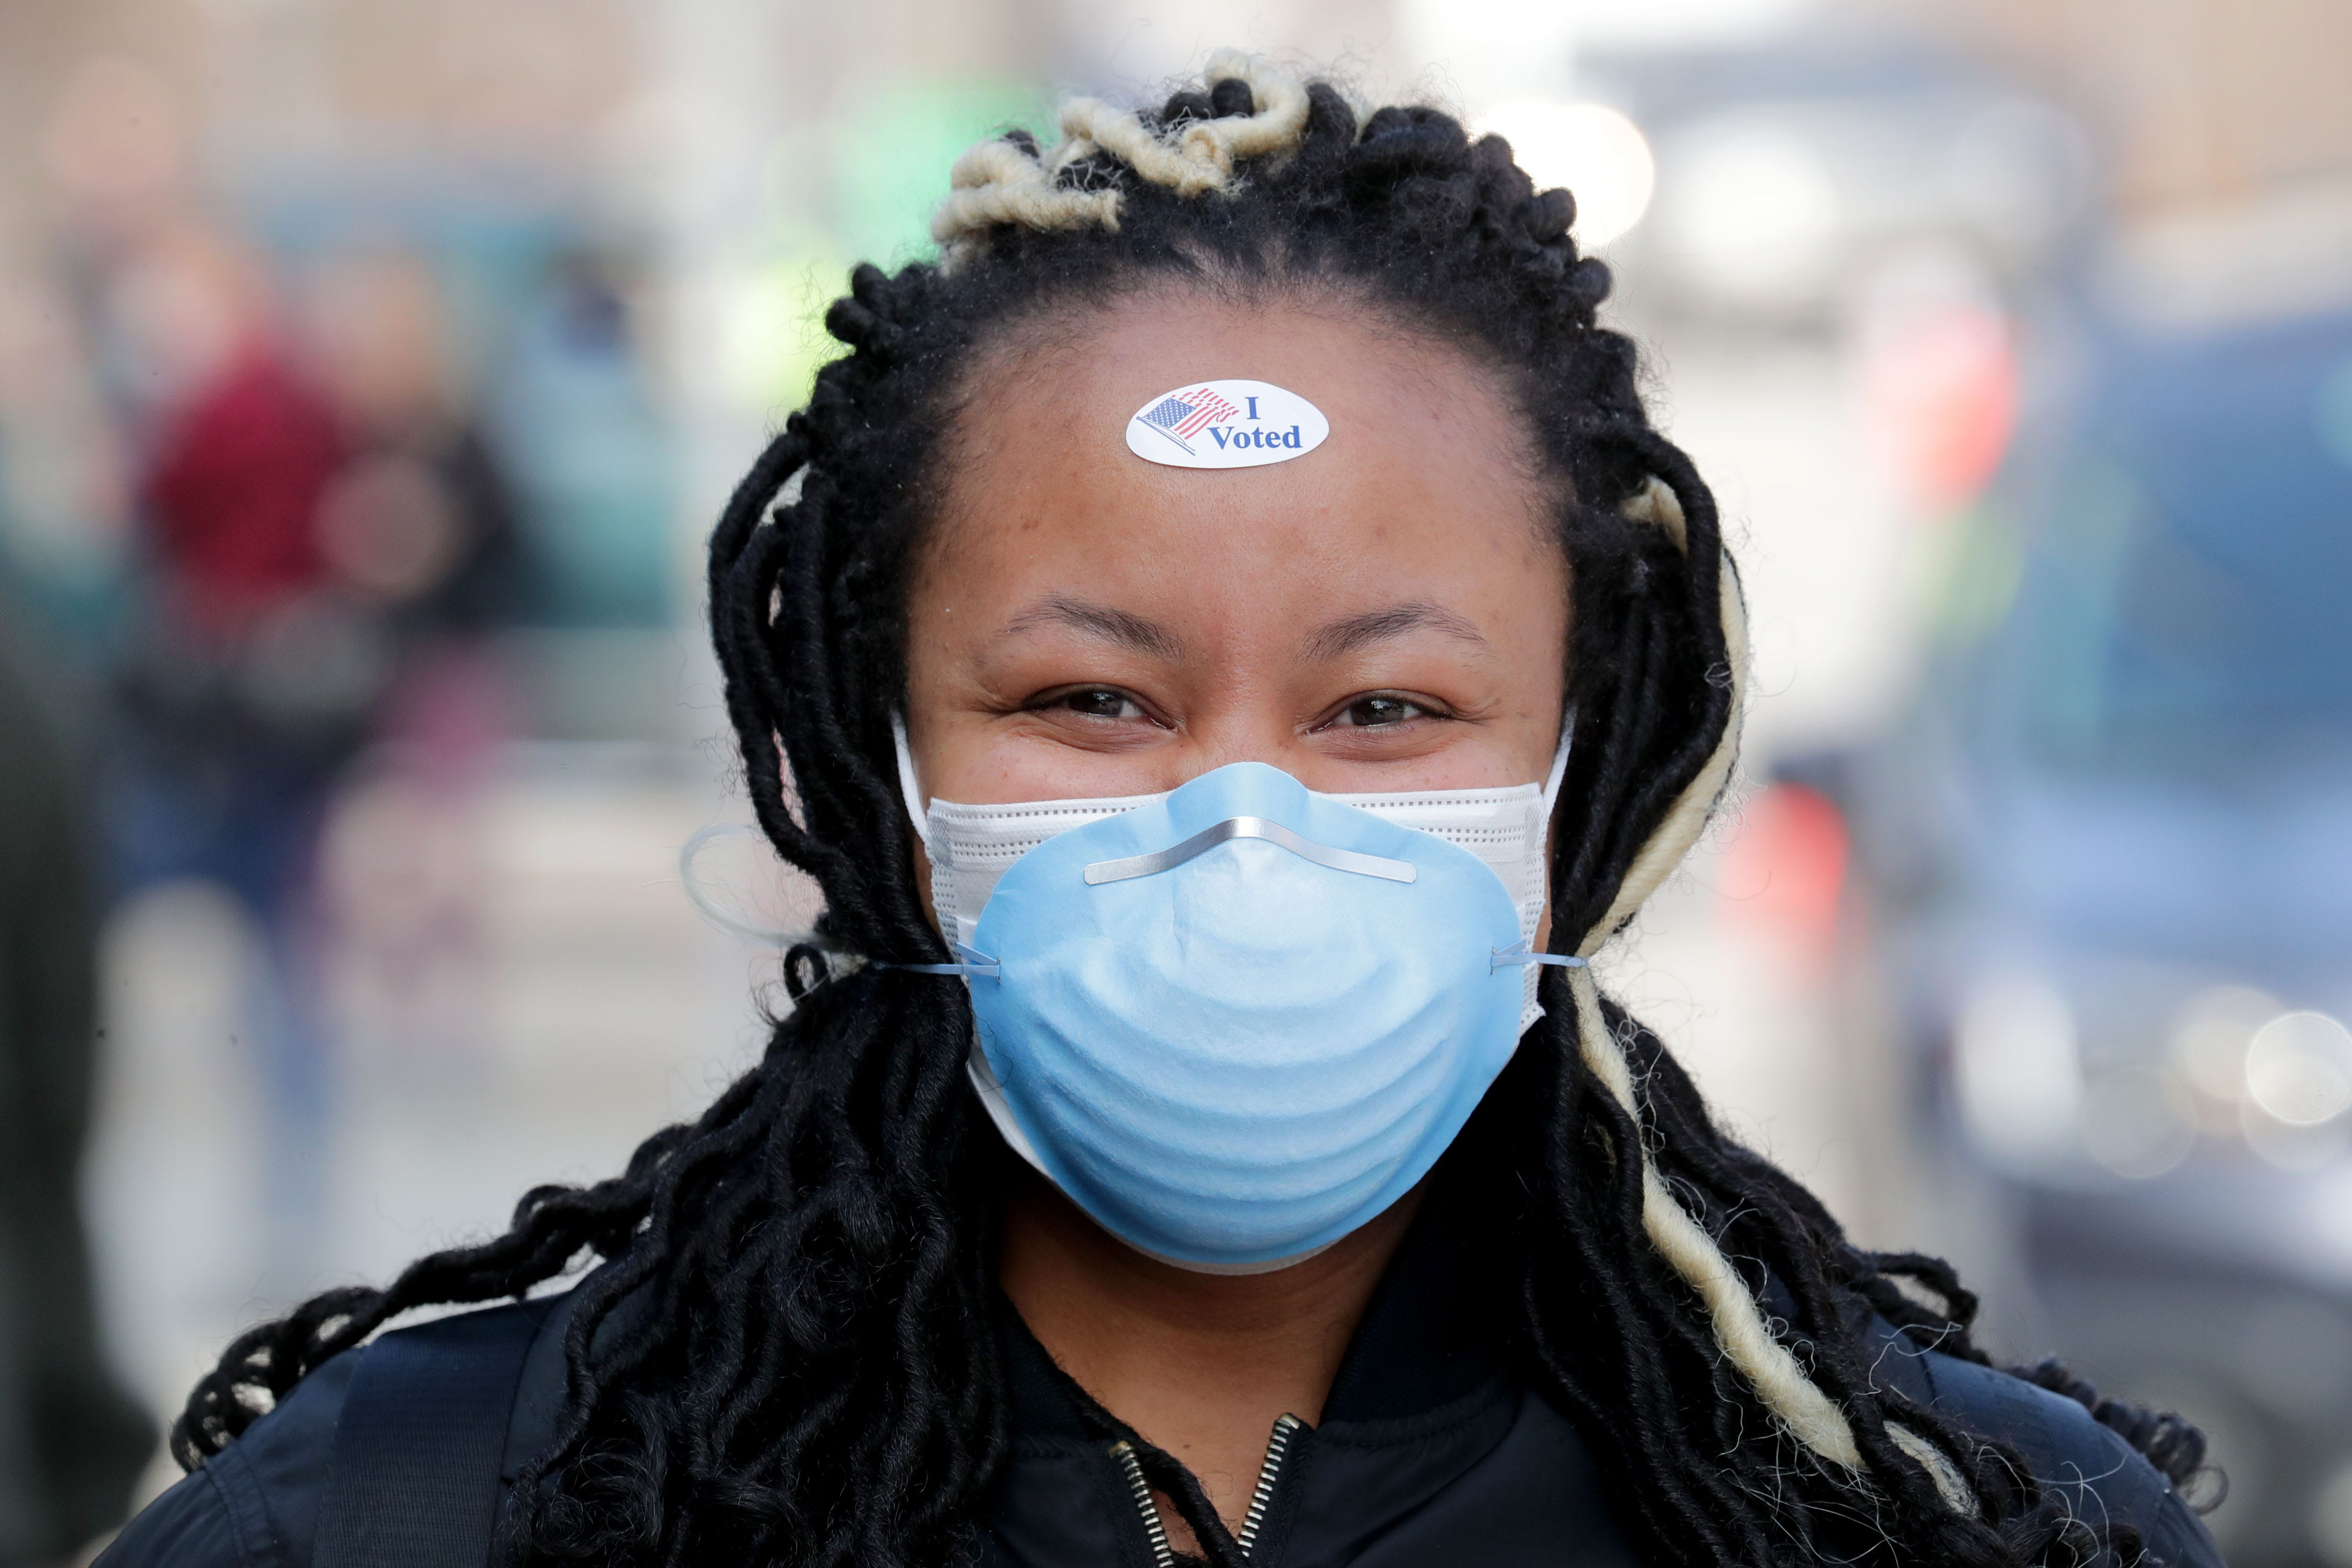 Sierra Woodard smiles through her face mask after waiting 2 hours and 22 minutes to vote at Riverside High School in Milwaukee April 7